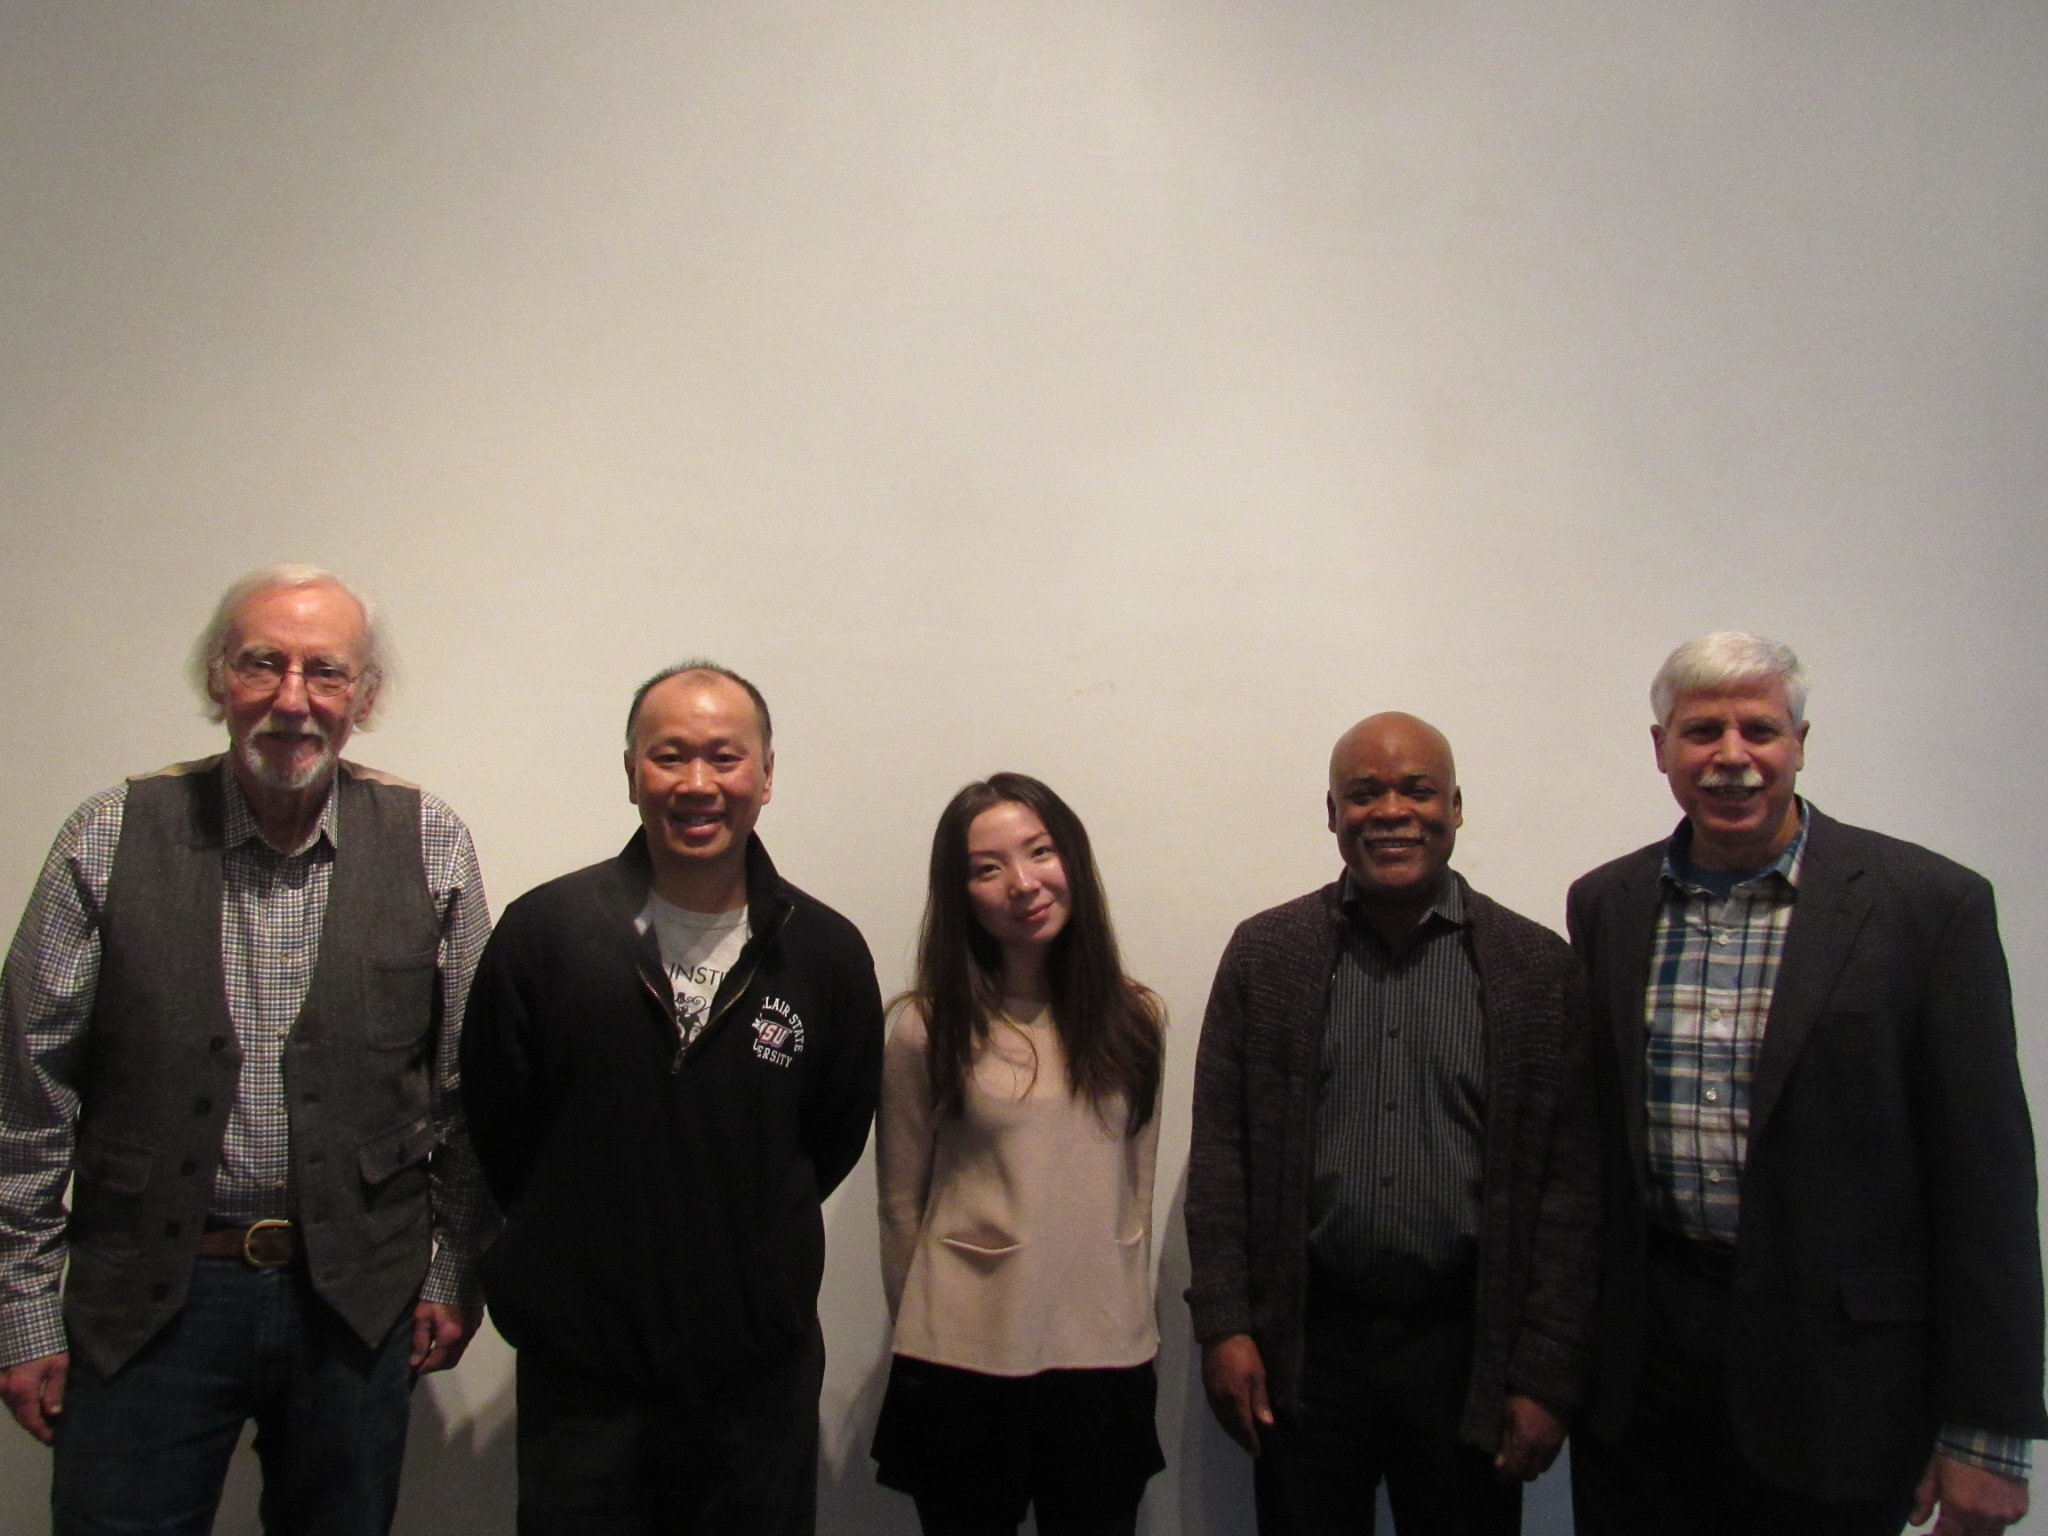 From Left to Right: Vern Ford (BFA '63), Sargent-at-Arms;Tom Wong (Engineering '84), Treasurer;Aika Mukhambetova (MPS-Design Management '15), Vice President; Gil Gerald (Architecture. '74), Secretary; and, Tom Fiorella (Industrial Engineering '74), President.